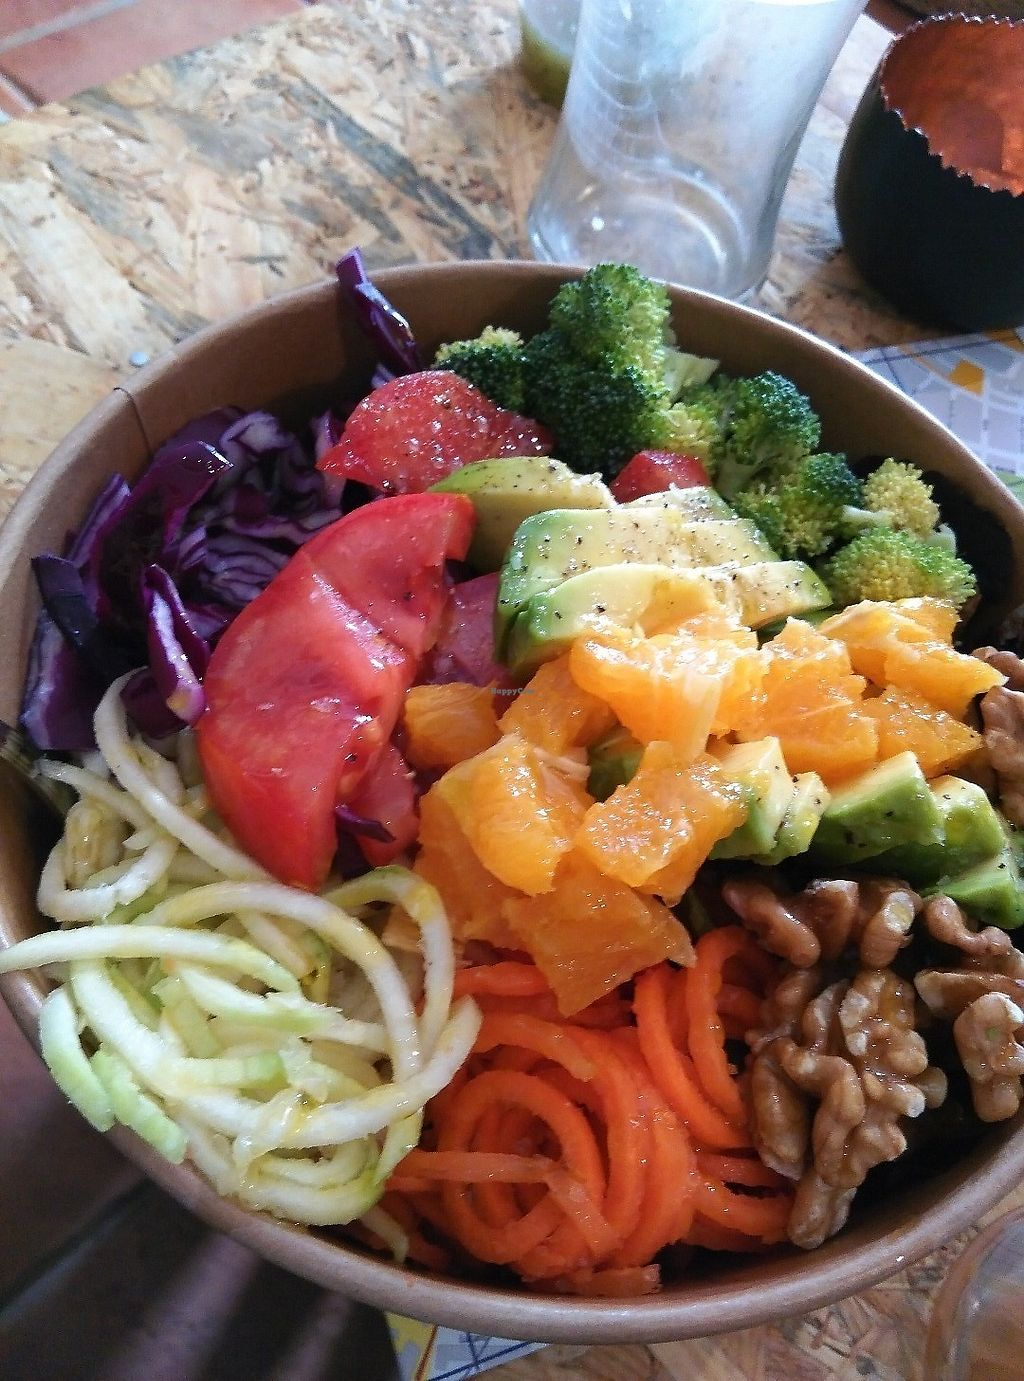 """Photo of La Libelula Coffeeshop  by <a href=""""/members/profile/Cfriedman67"""">Cfriedman67</a> <br/>Great veggie bowl / salad.  Full of flavor and filling <br/> June 19, 2017  - <a href='/contact/abuse/image/87896/270926'>Report</a>"""